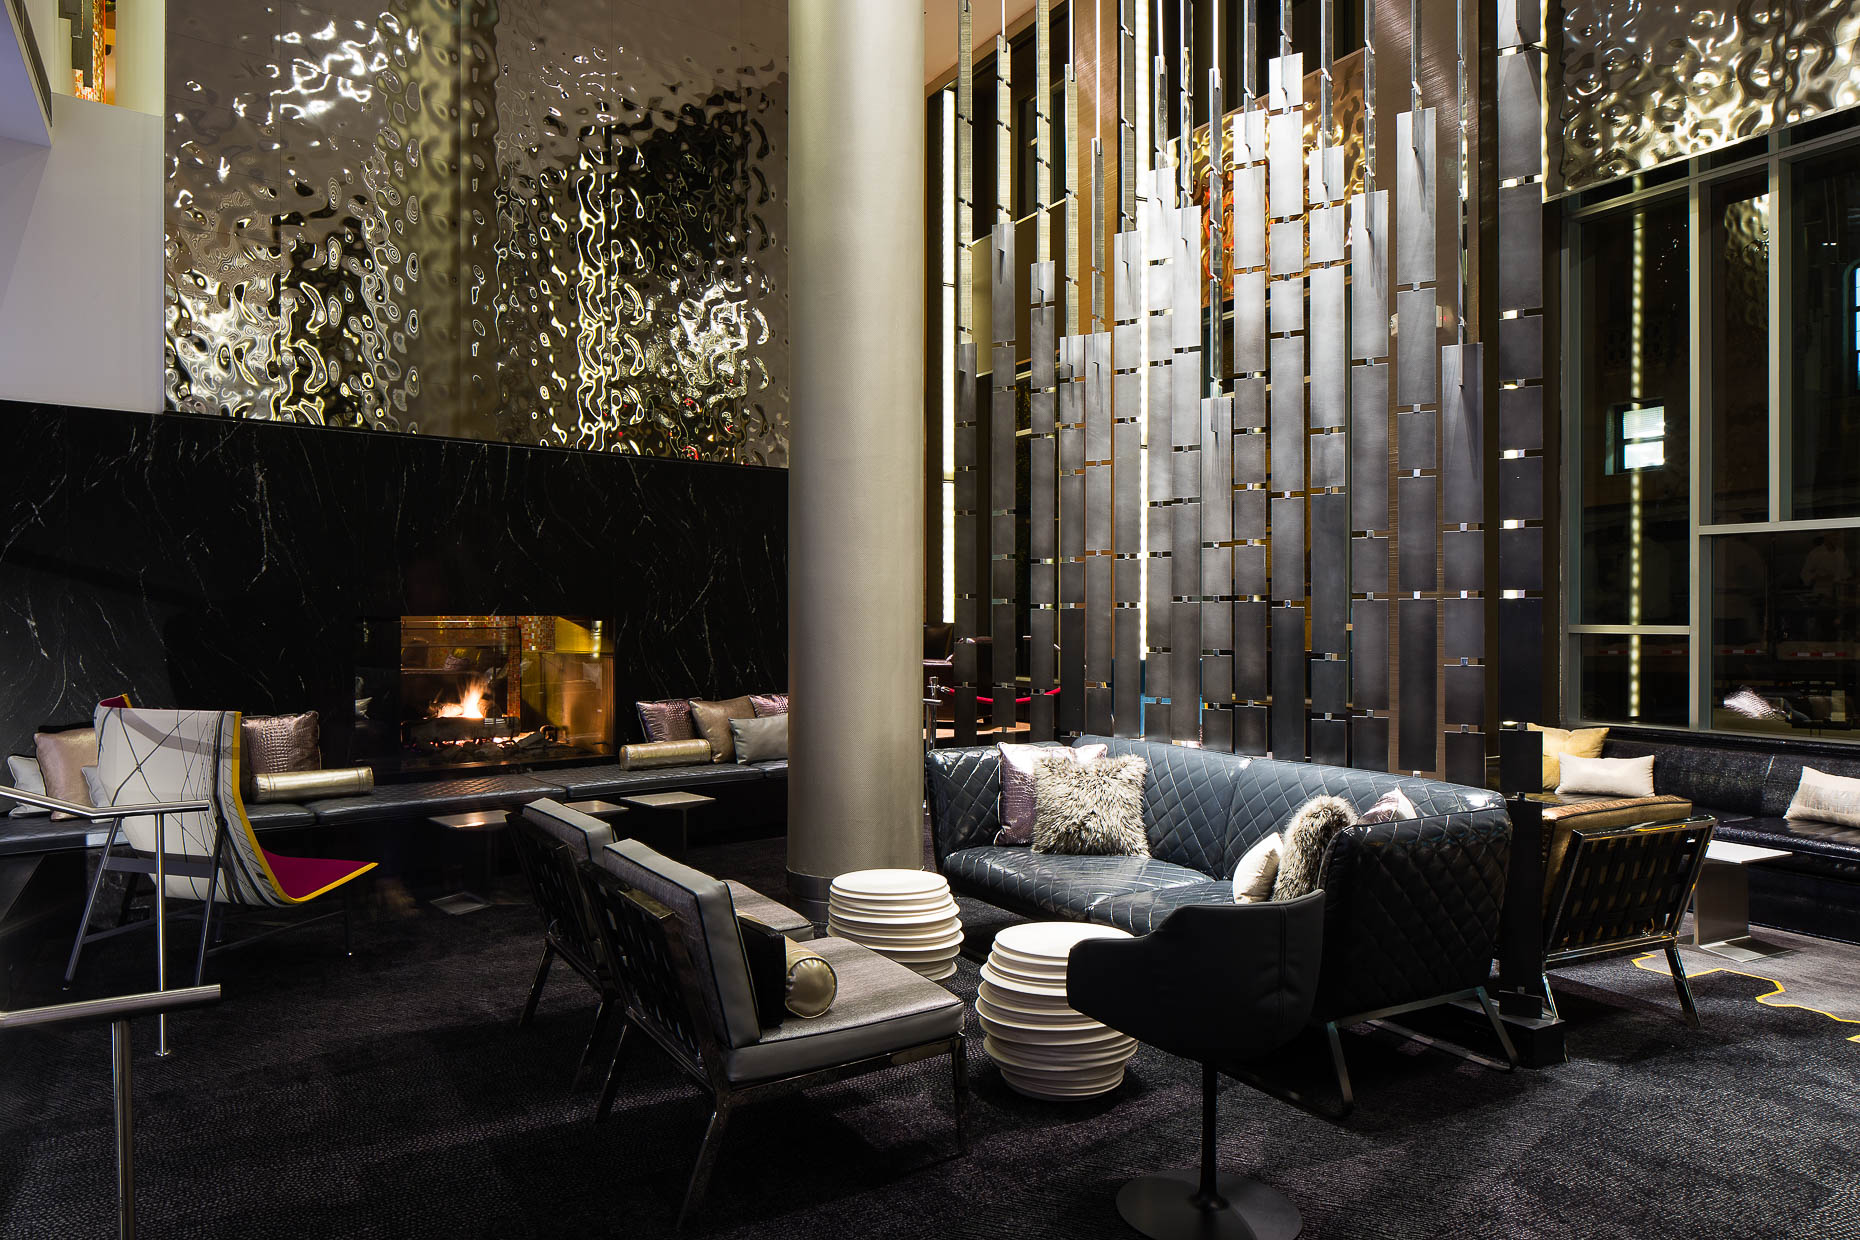 Interior | W Hotel NY | Brian Park Photo New York | 2